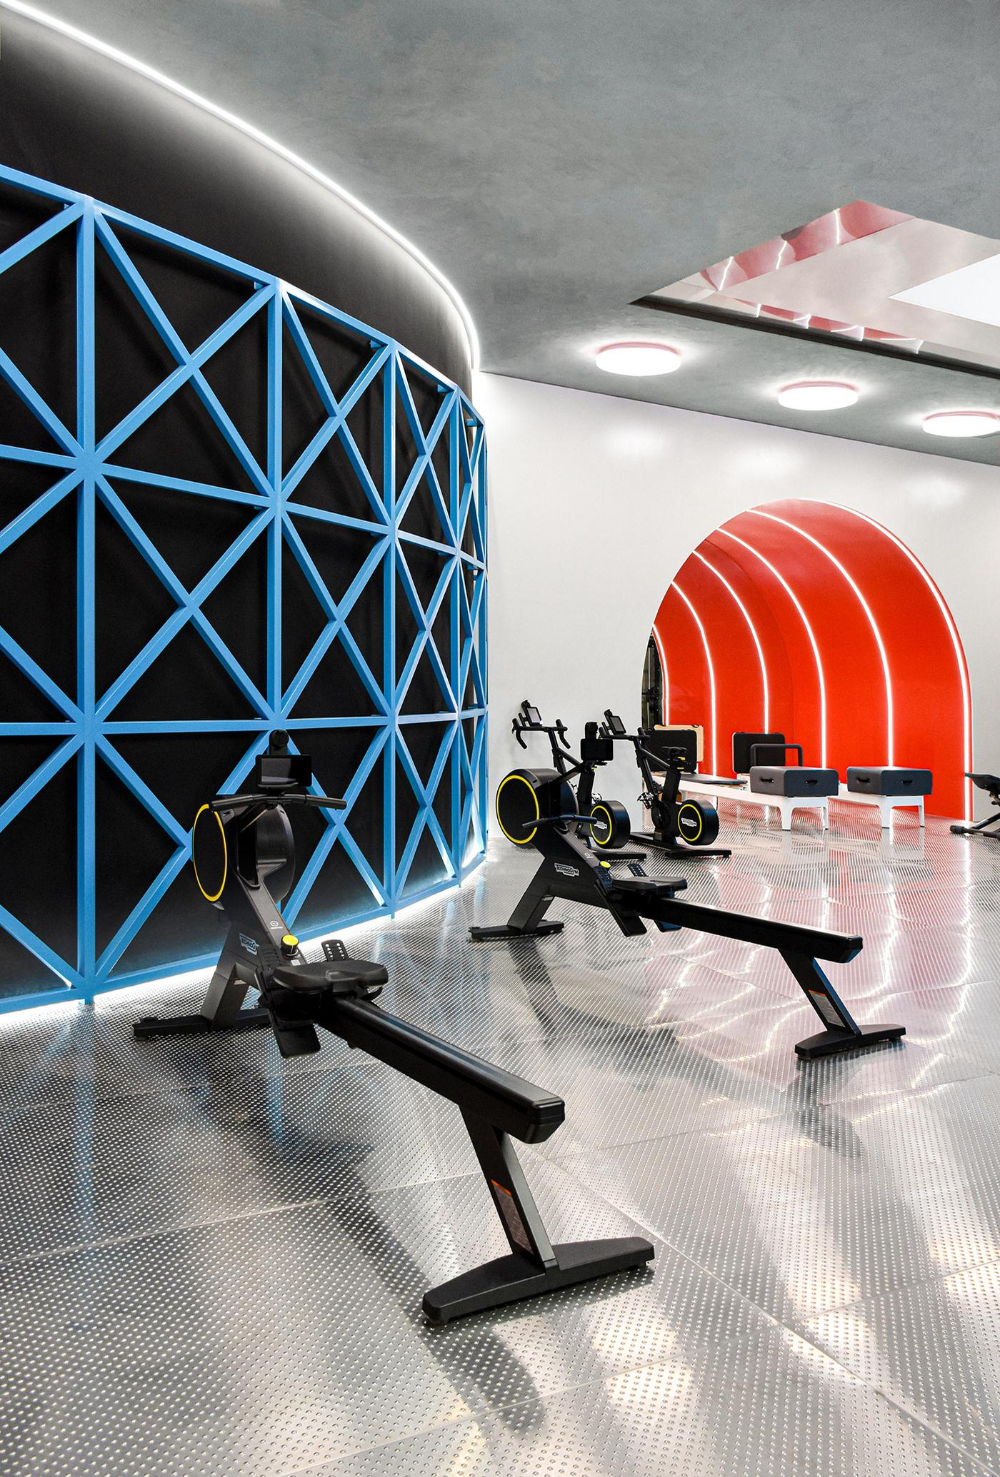 There Is A Conventional Training Area With Technogym Equipment Gym Design Slide Design Design Milk